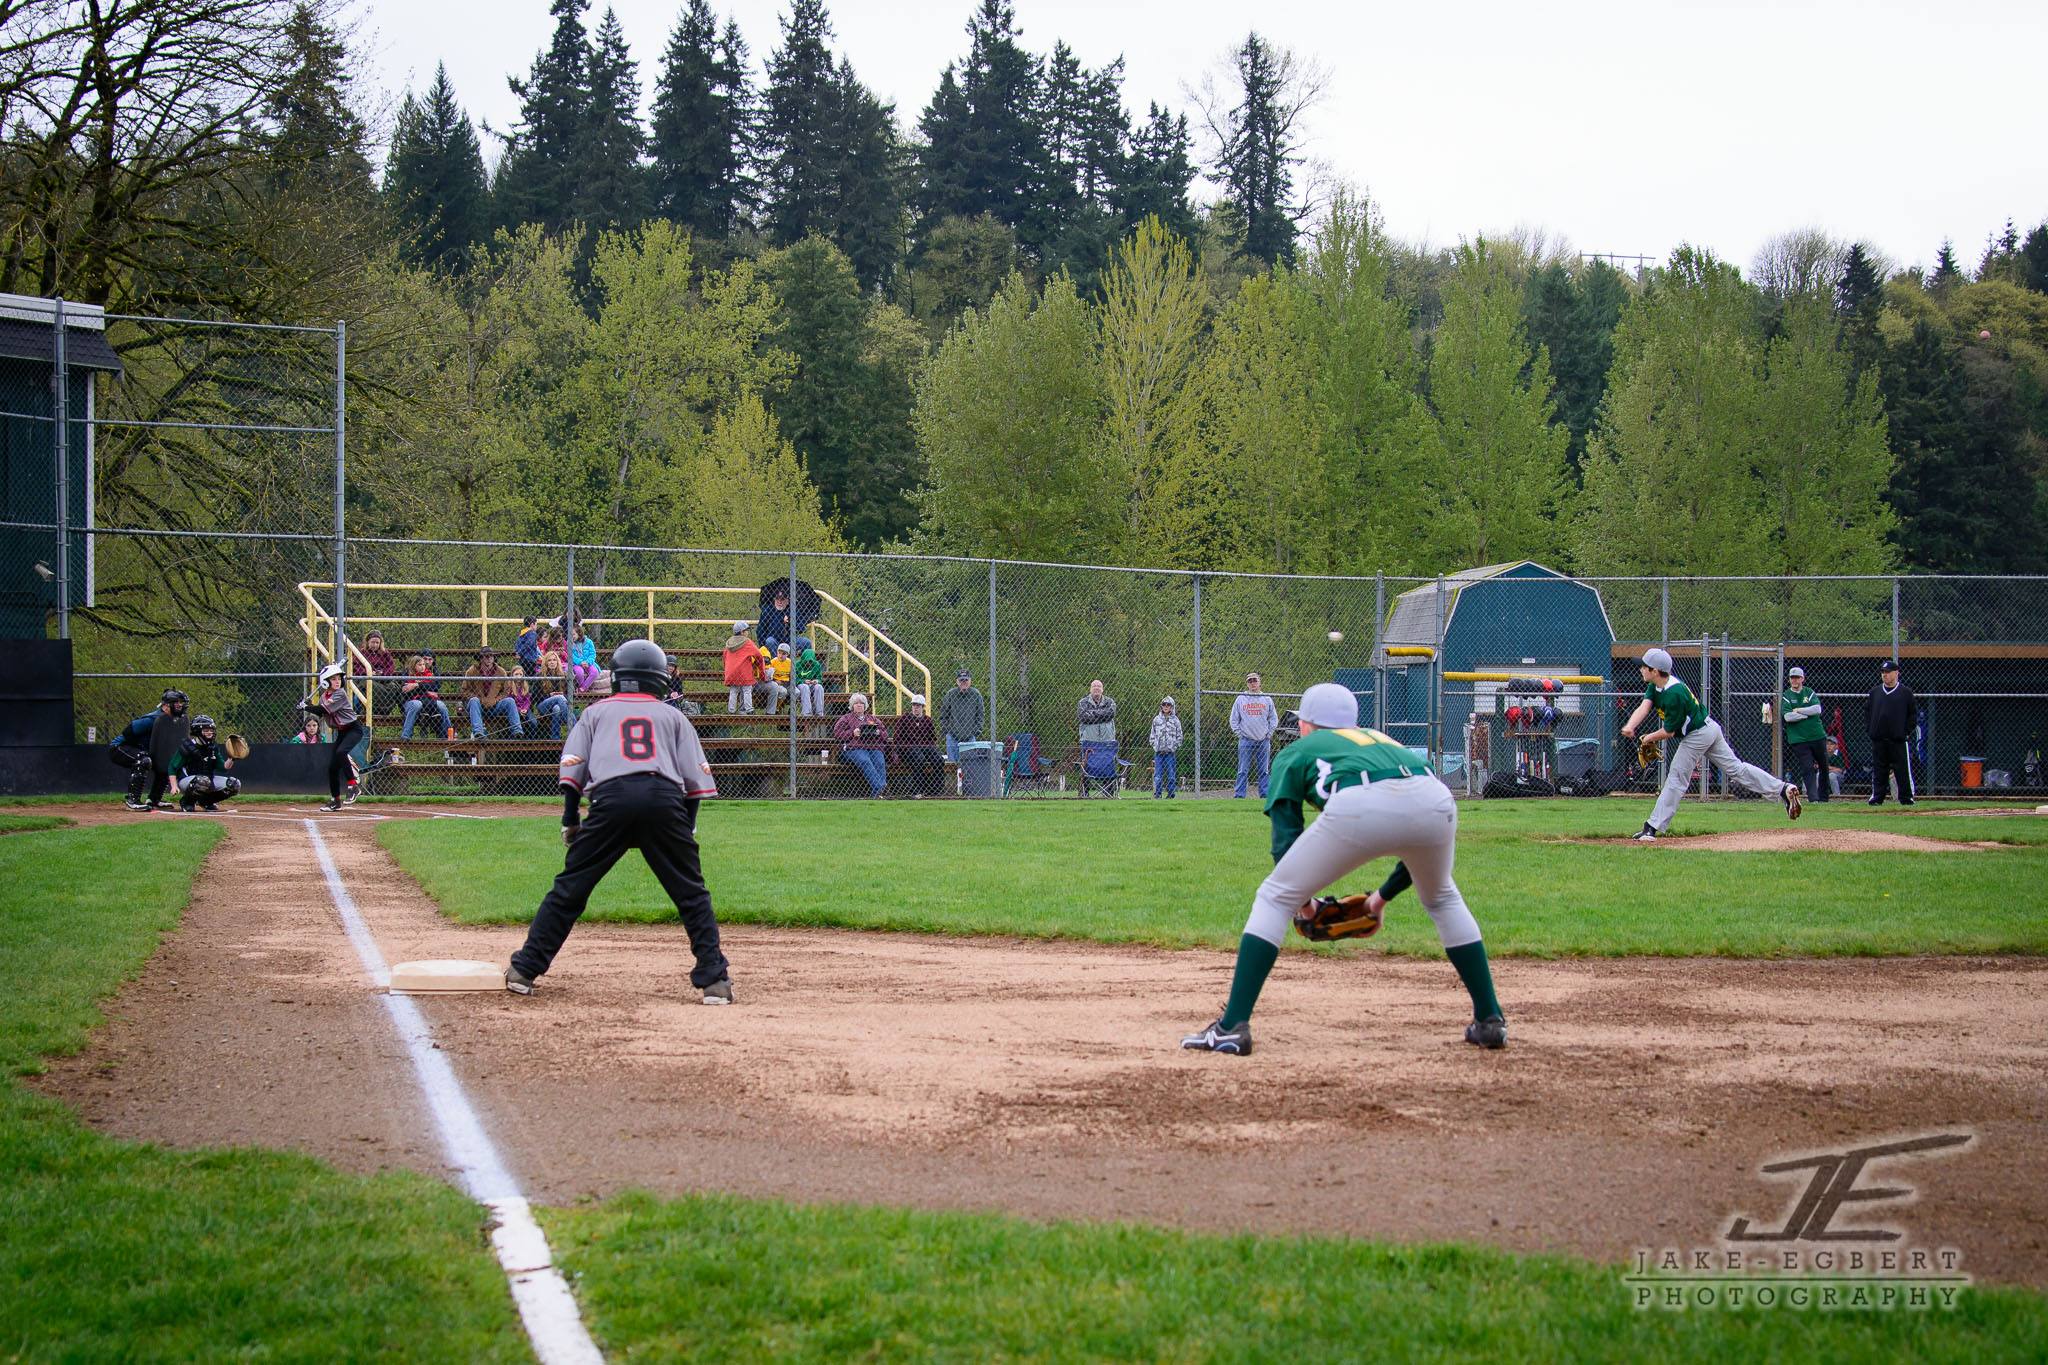 FB - 2014-04-05 - GreenSox - 19326.jpg